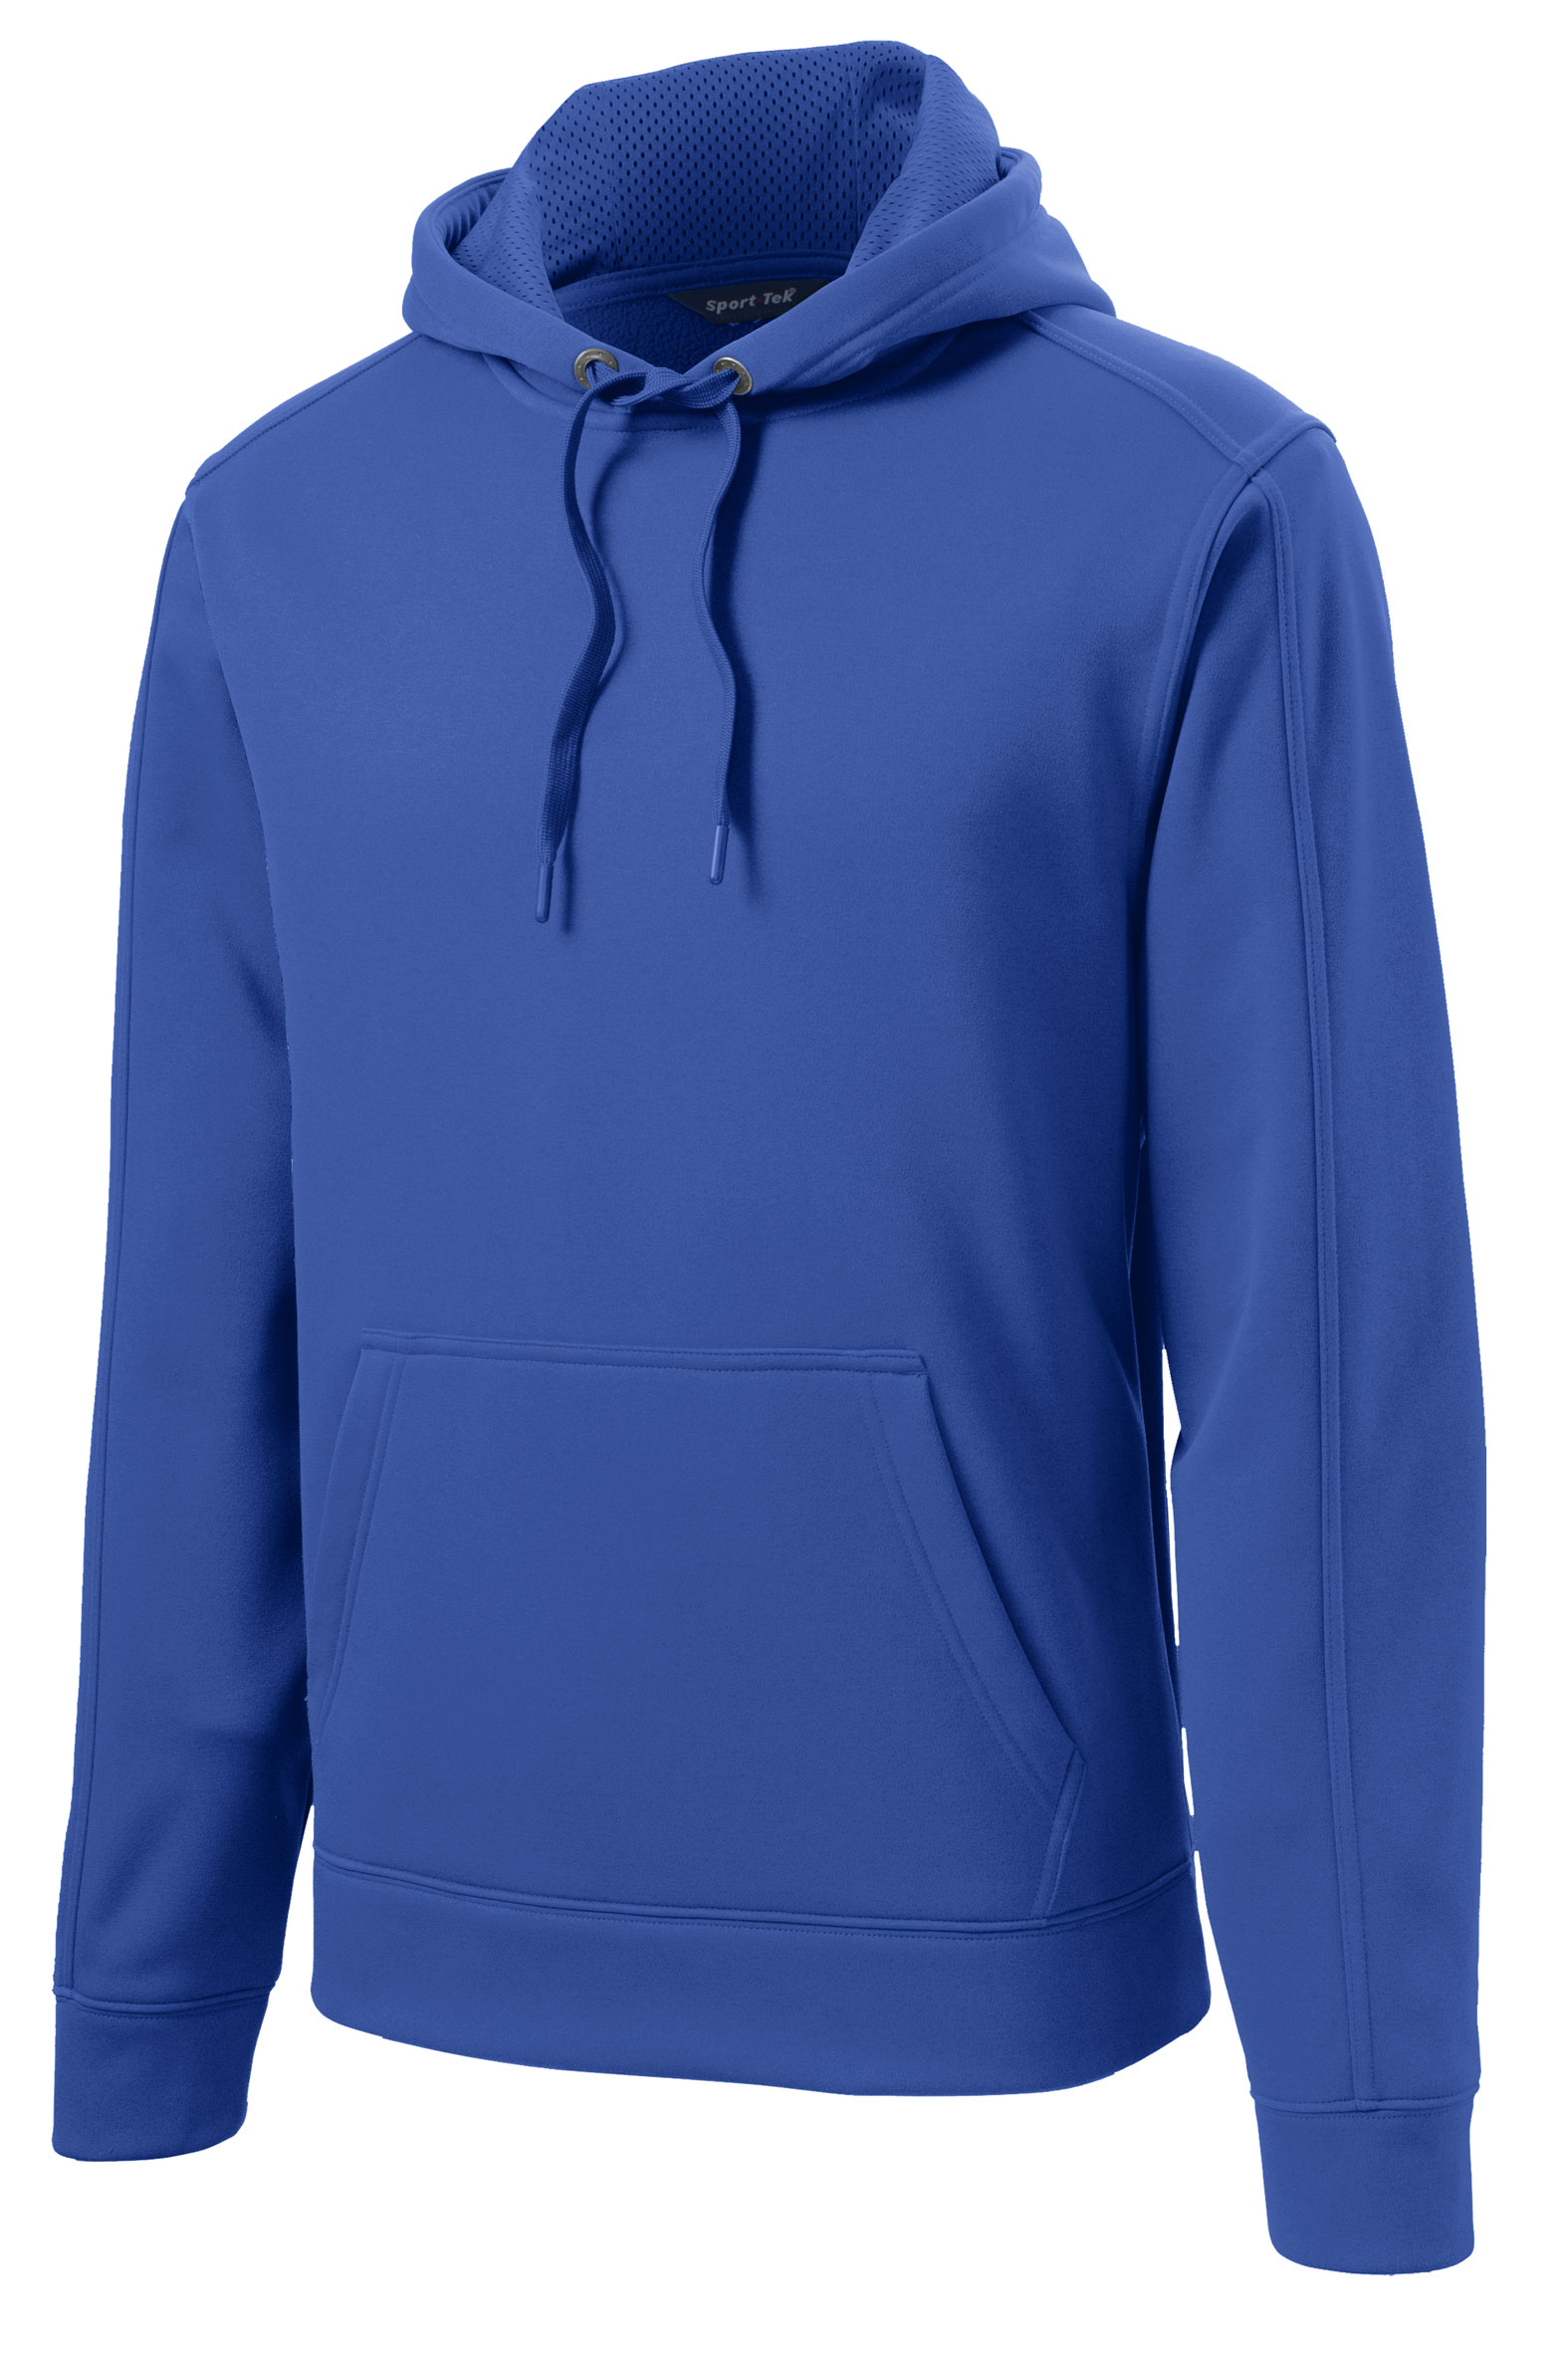 Repel Hooded Pullover